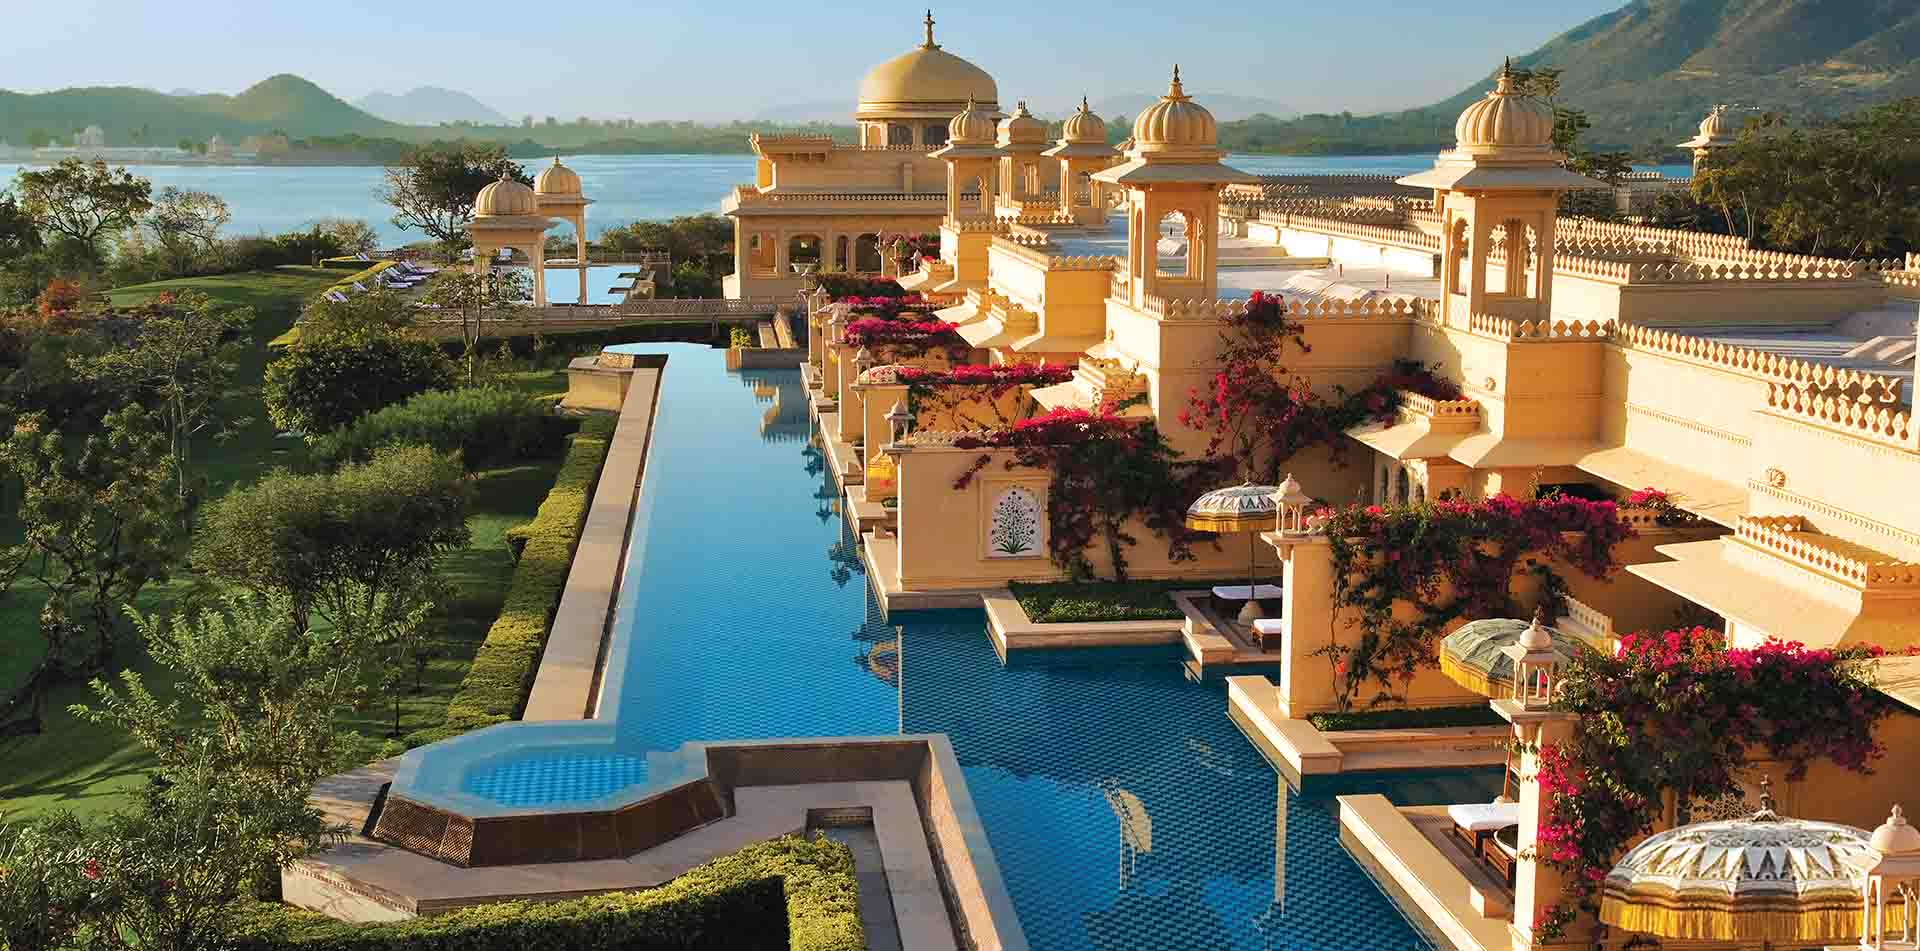 Asia Northern India luxurious temple style hotel with wraparound pool - luxury vacation destinations